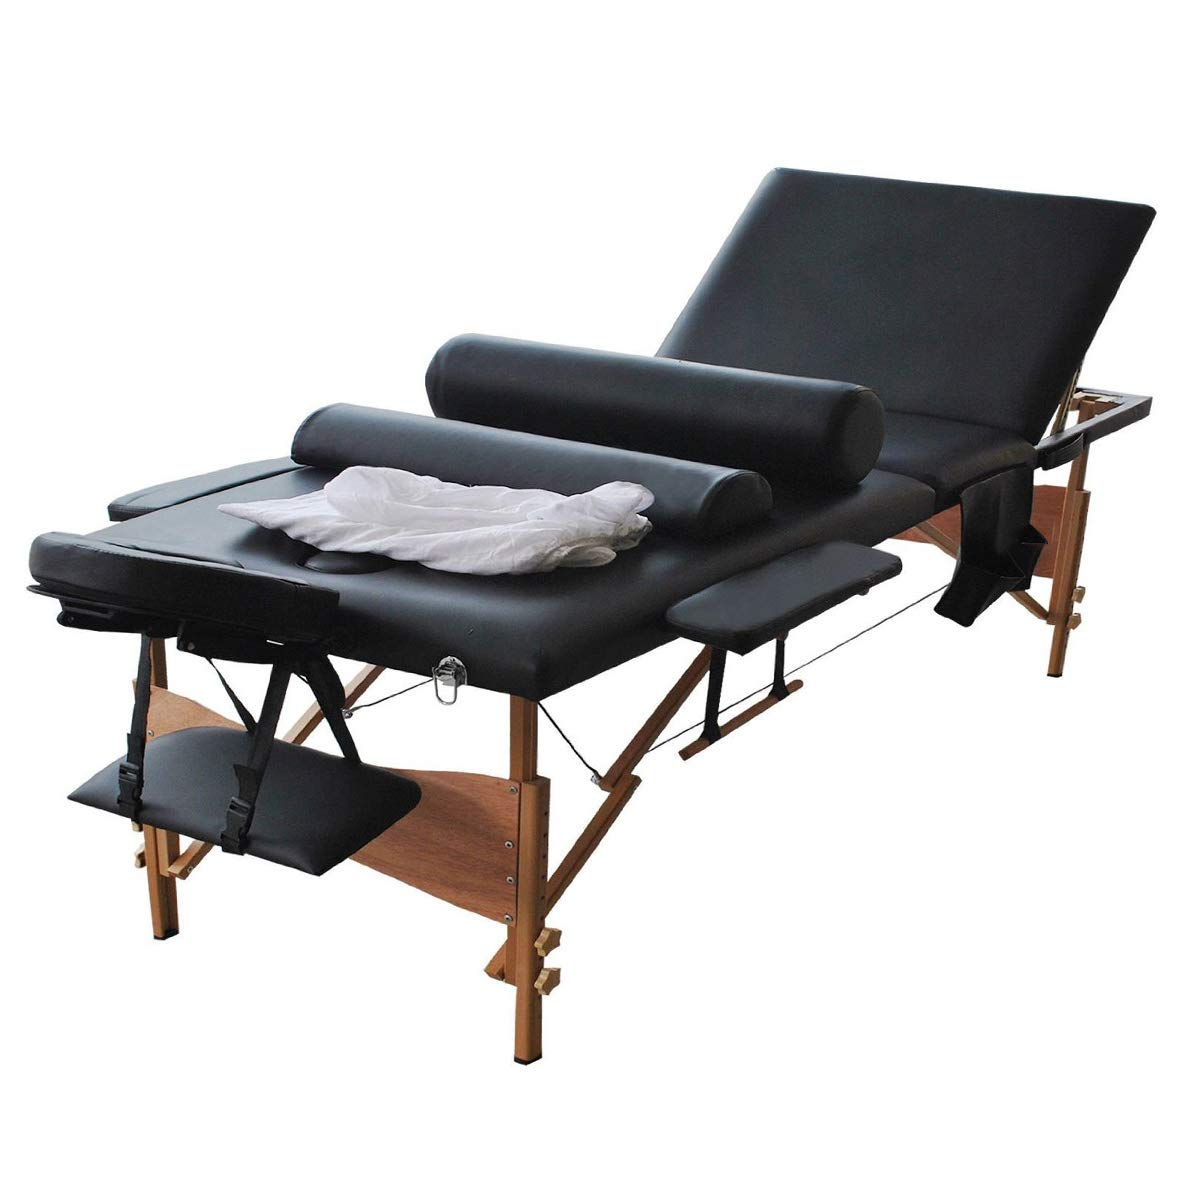 Portable Massage Table, BestComfort Height Adjustable Massage Table 3 Folding Massage Bed Spa Bed Facial Cradle Salon Bed With Carry Case by BestComfort